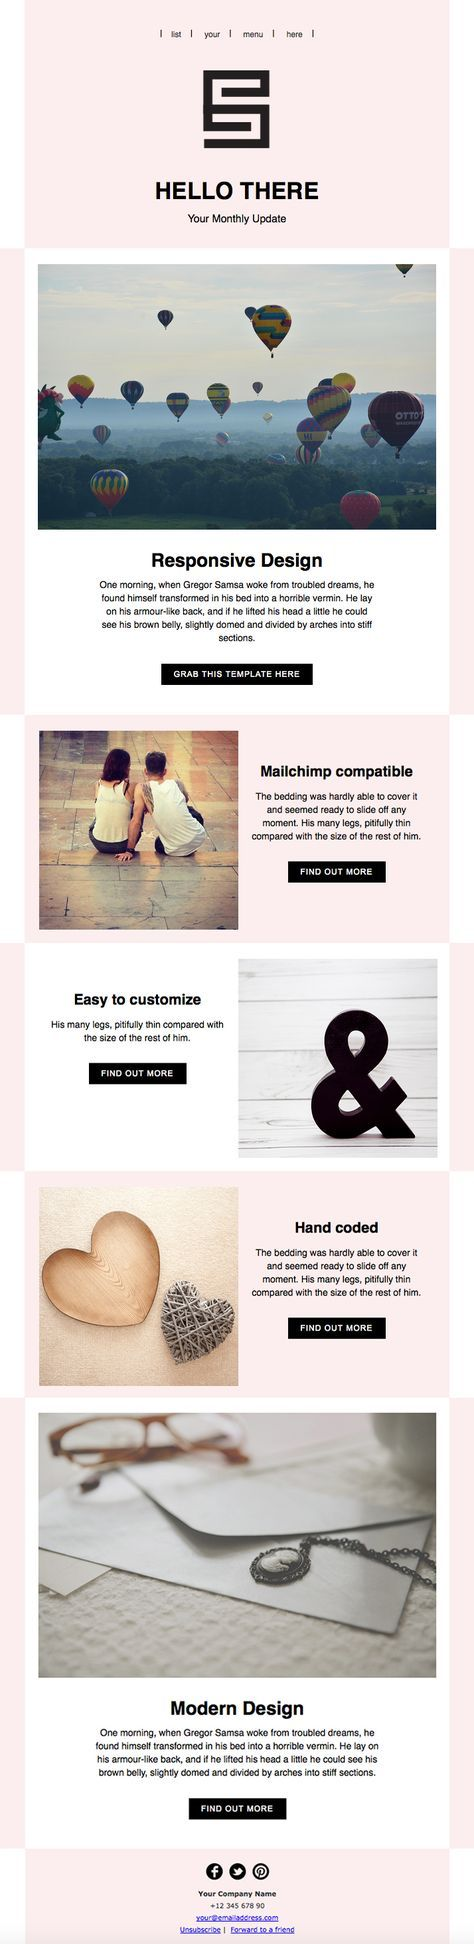 cool mailchimp templates - 1000 ideas about html newsletter templates on pinterest